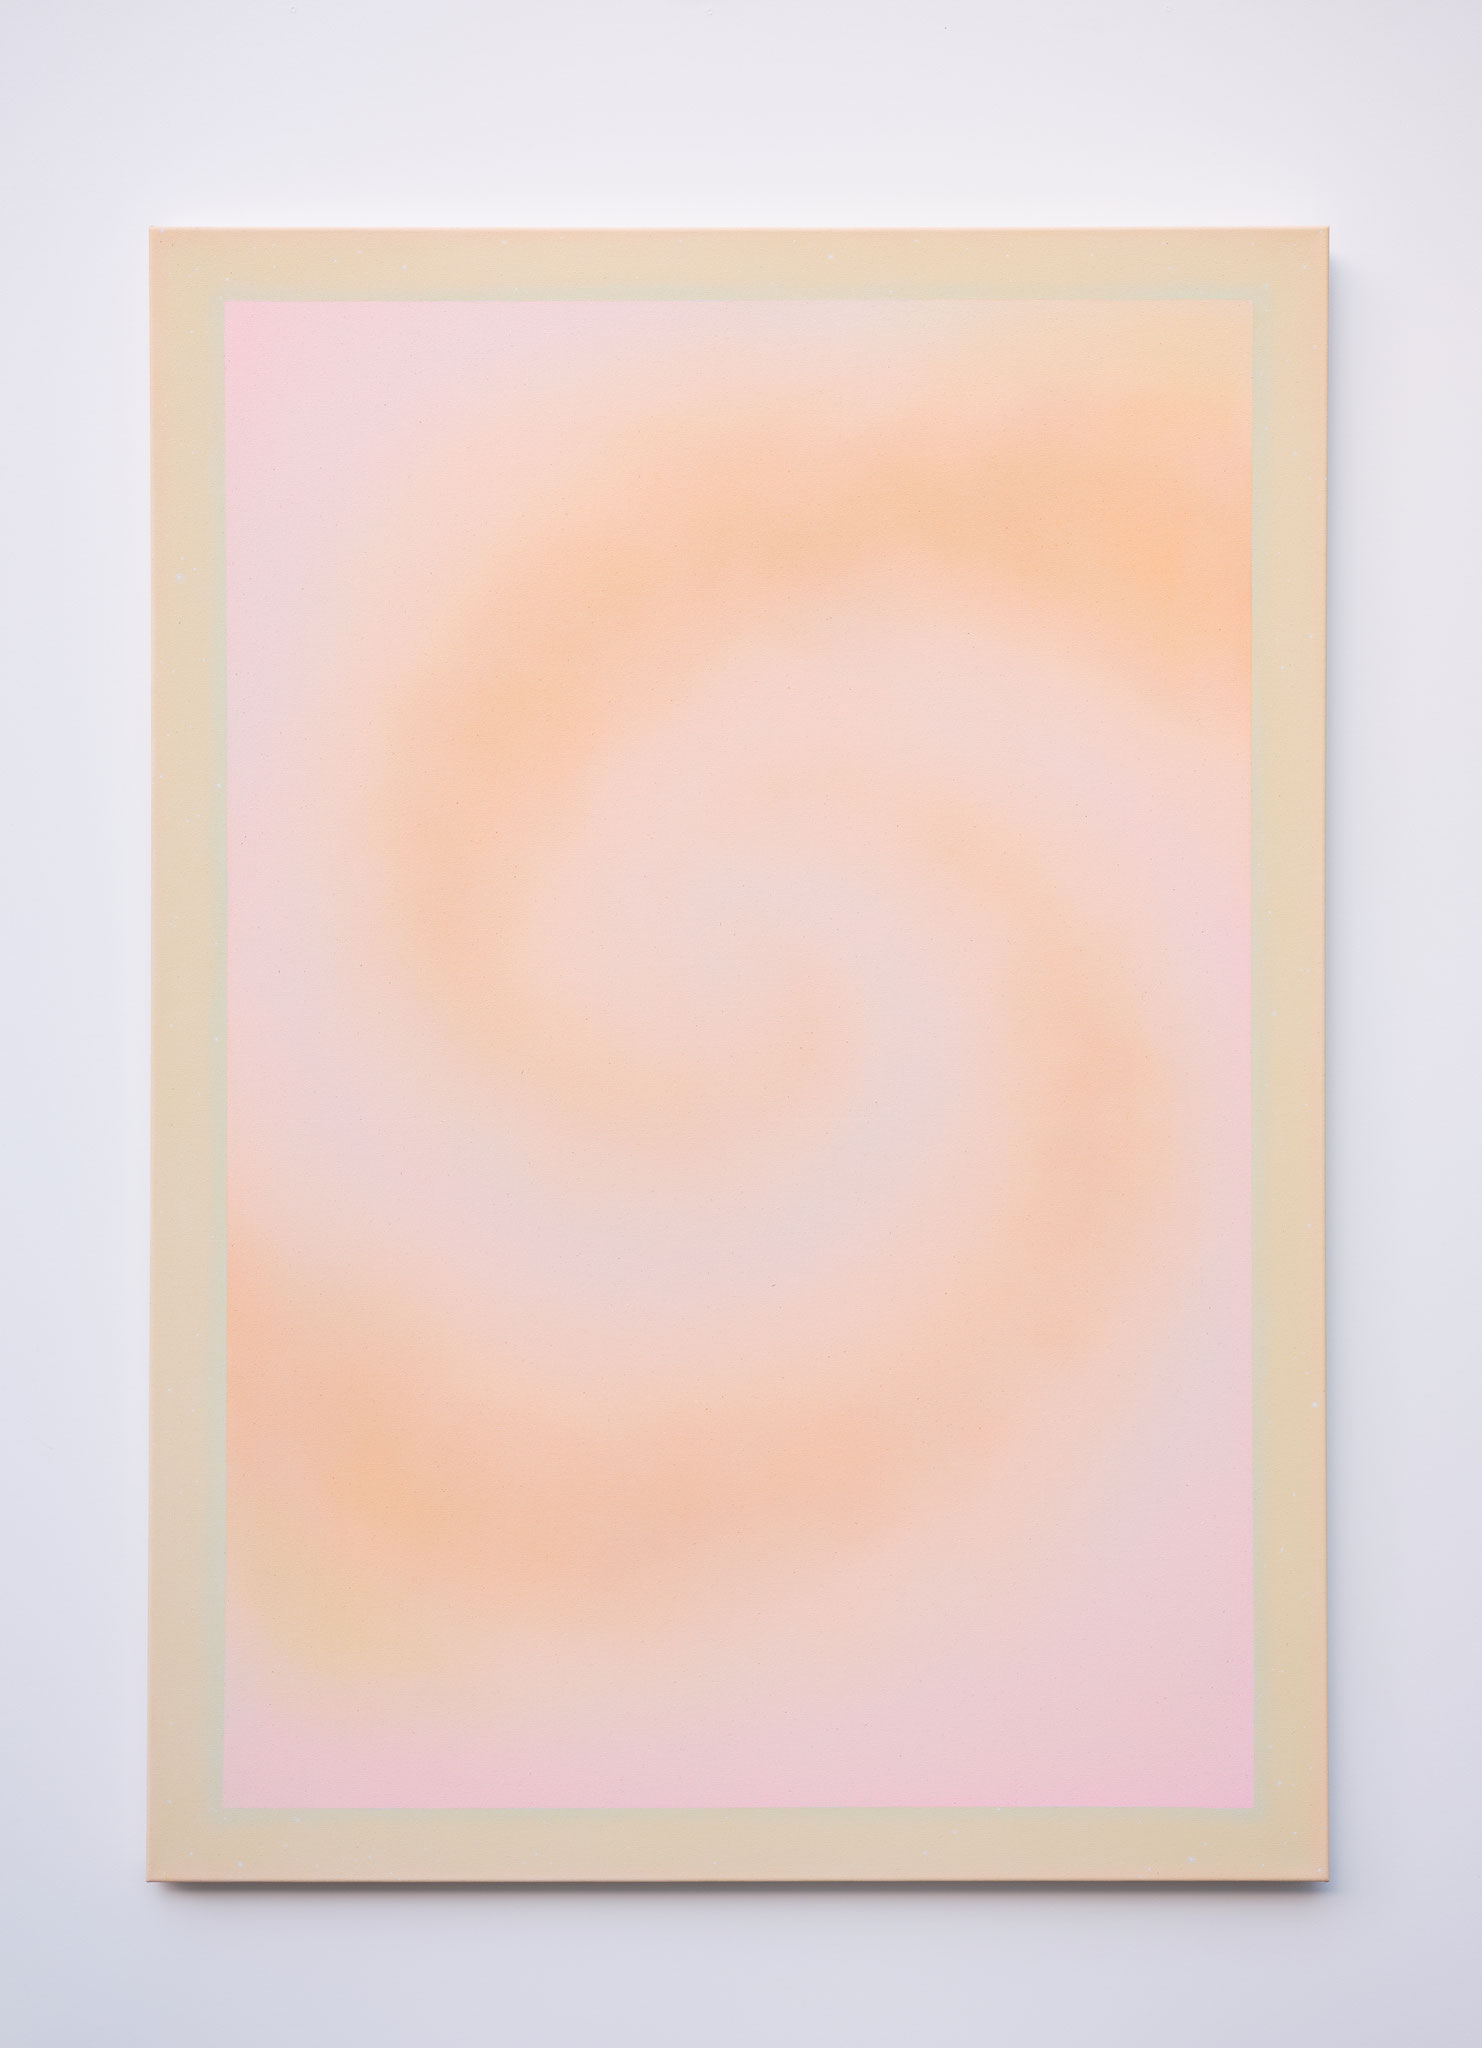 "Alina Birkner ""Untitled (Soft Creation)"" 2018, 170x120 cm, Acrylic on Canvas"